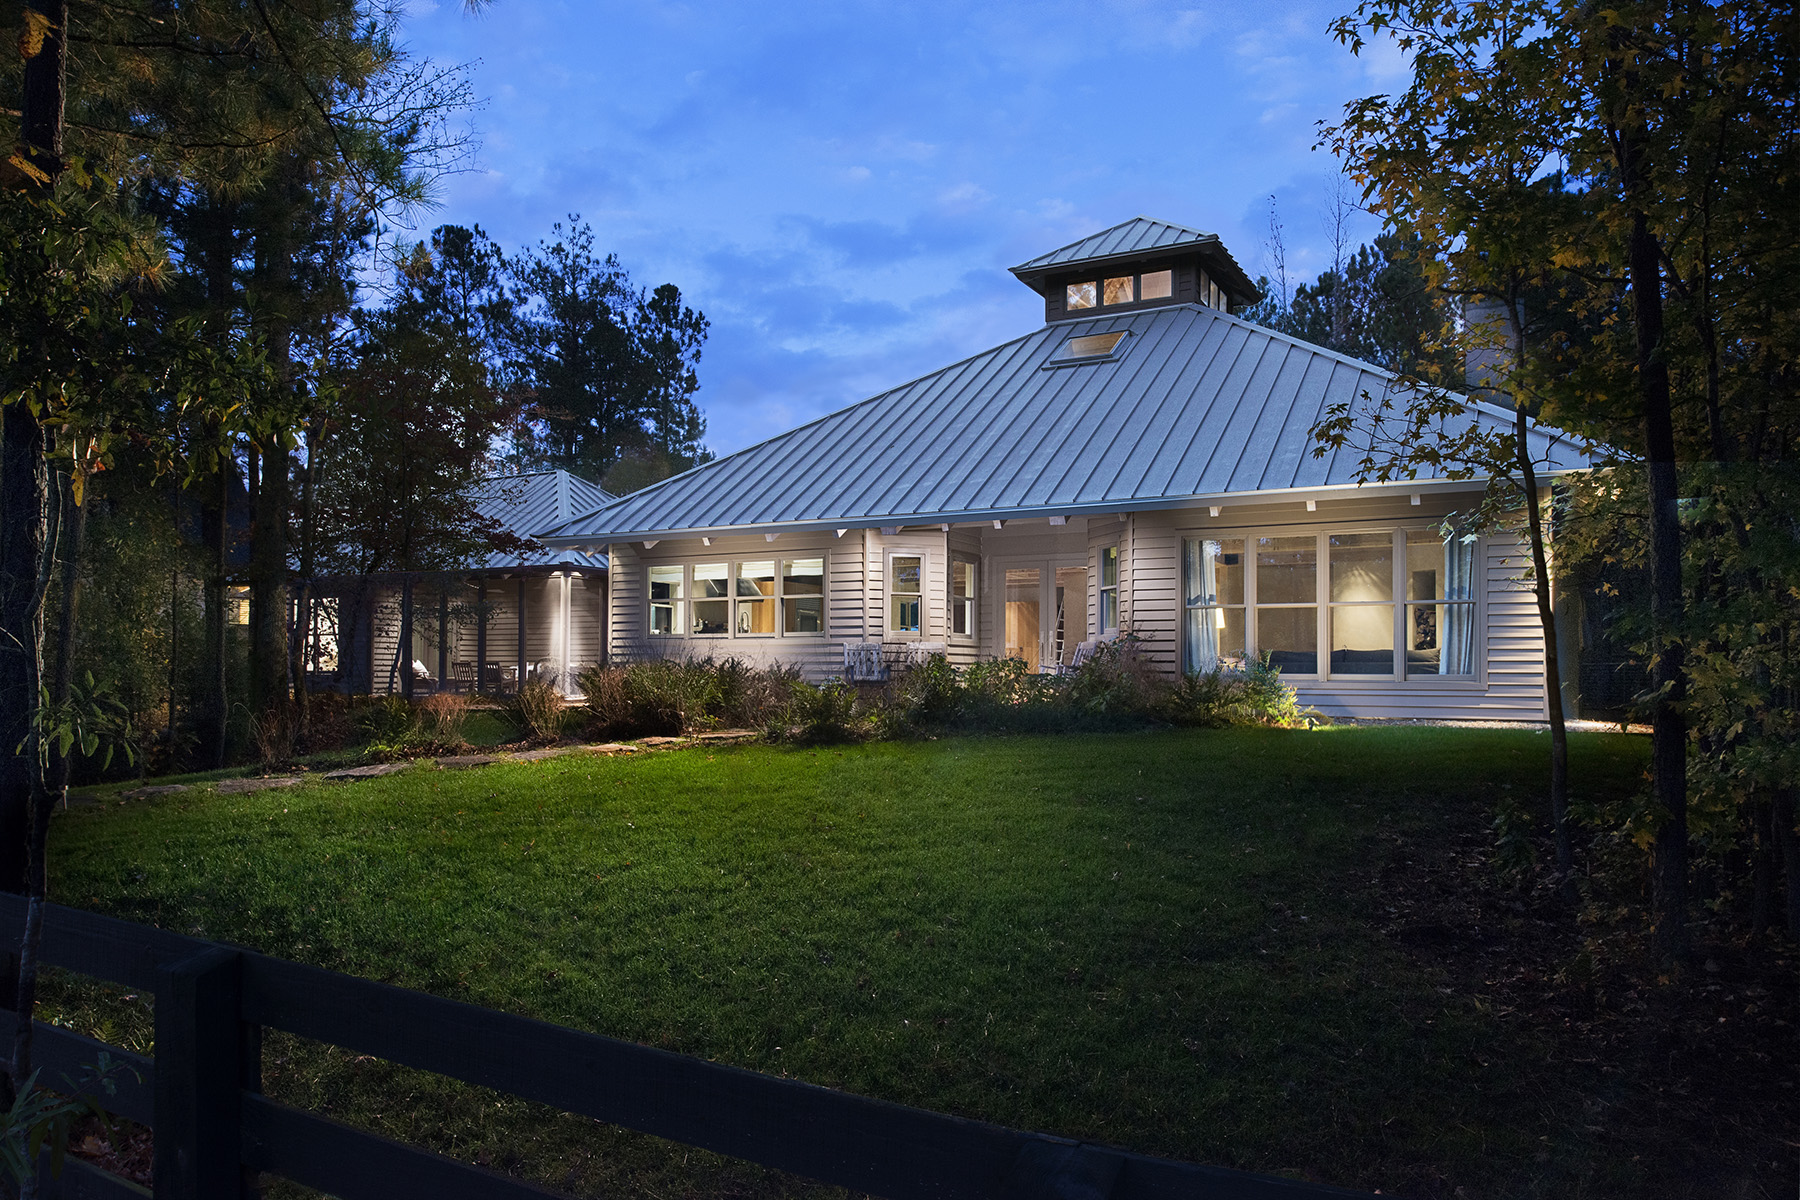 Contemporary Farmhouse with Exquisite Architecture in Serenbe 9230 Selborne Lane Chattahoochee Hills, Georgia 30268 United States